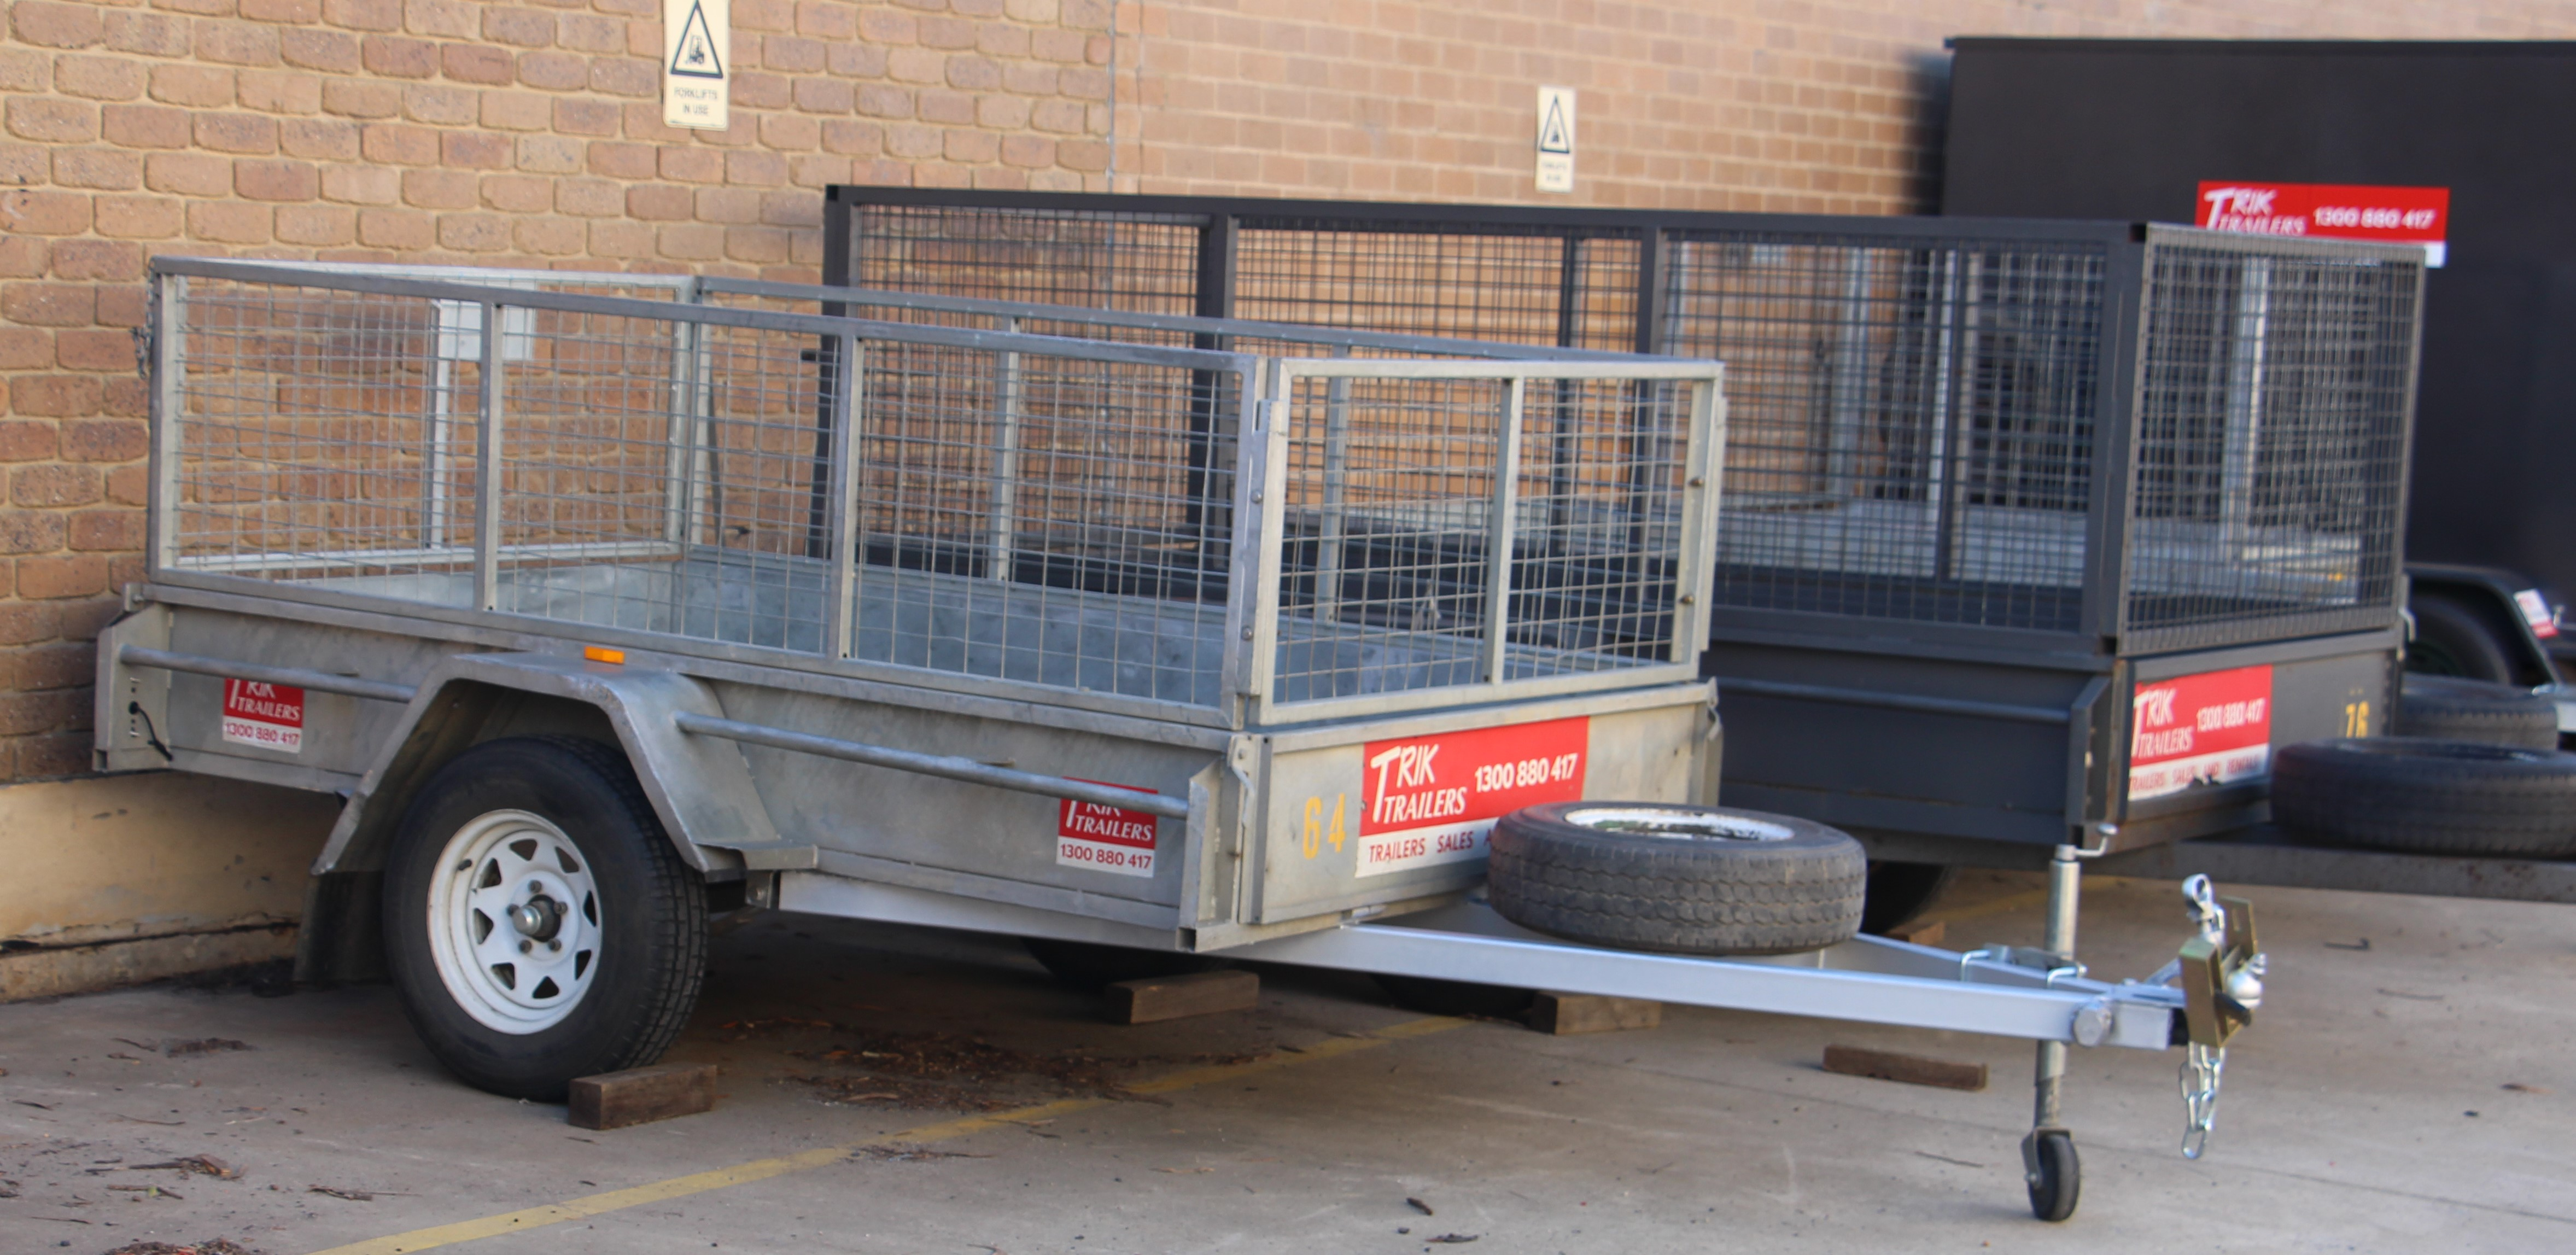 6x4, 750 GVM, 480KG PAYLOAD, SILVER & 10X5 2T GVM, 1400KG PAYLOAD, HIRE CAGE TRAILER